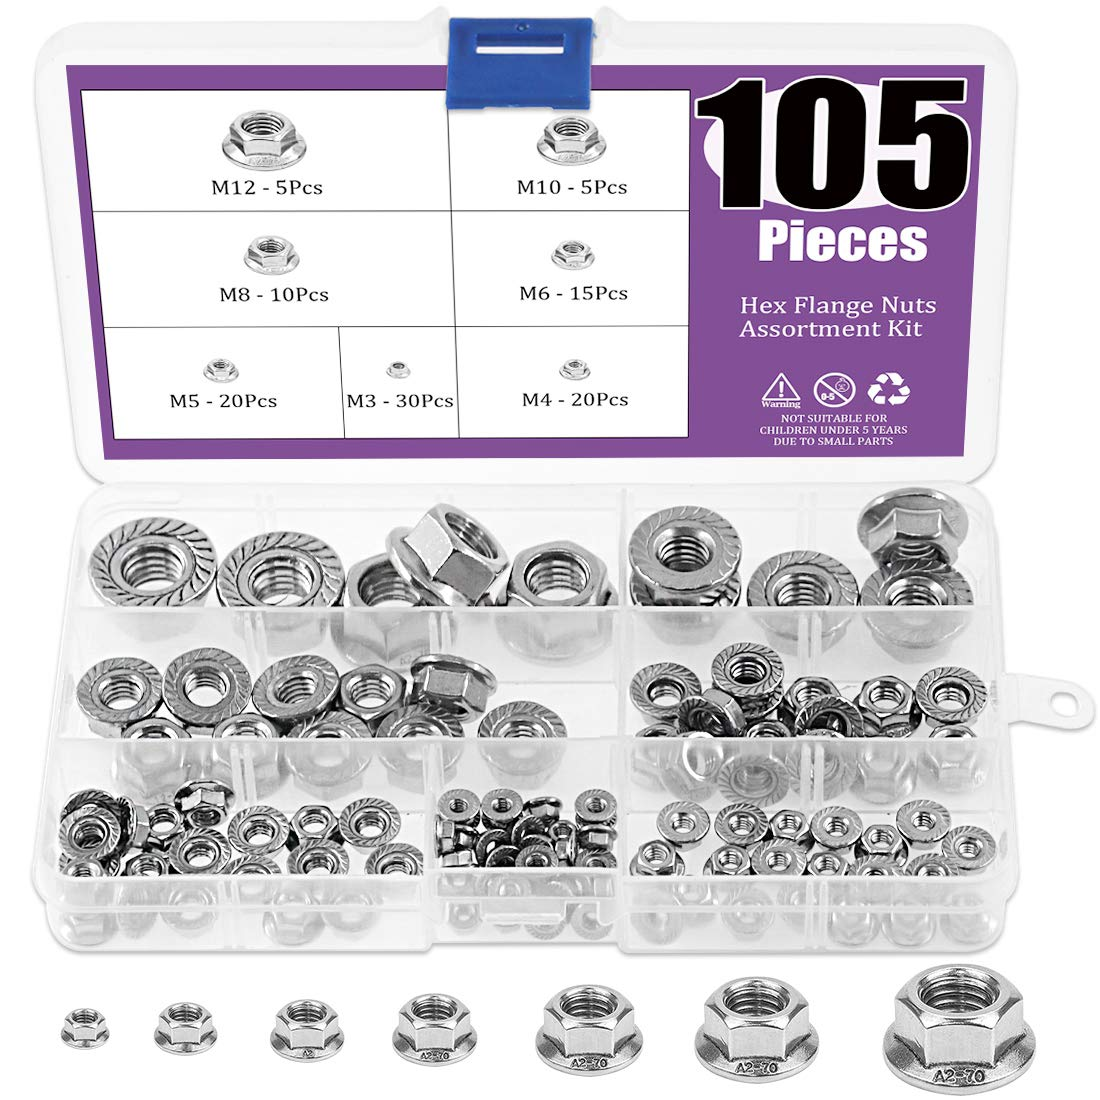 HEXAGON WELD NUTS A2 STAINLESS STEEL FIT METRIC M3 M4 M5 M6 M10 M12 BOLTS,SCREWS